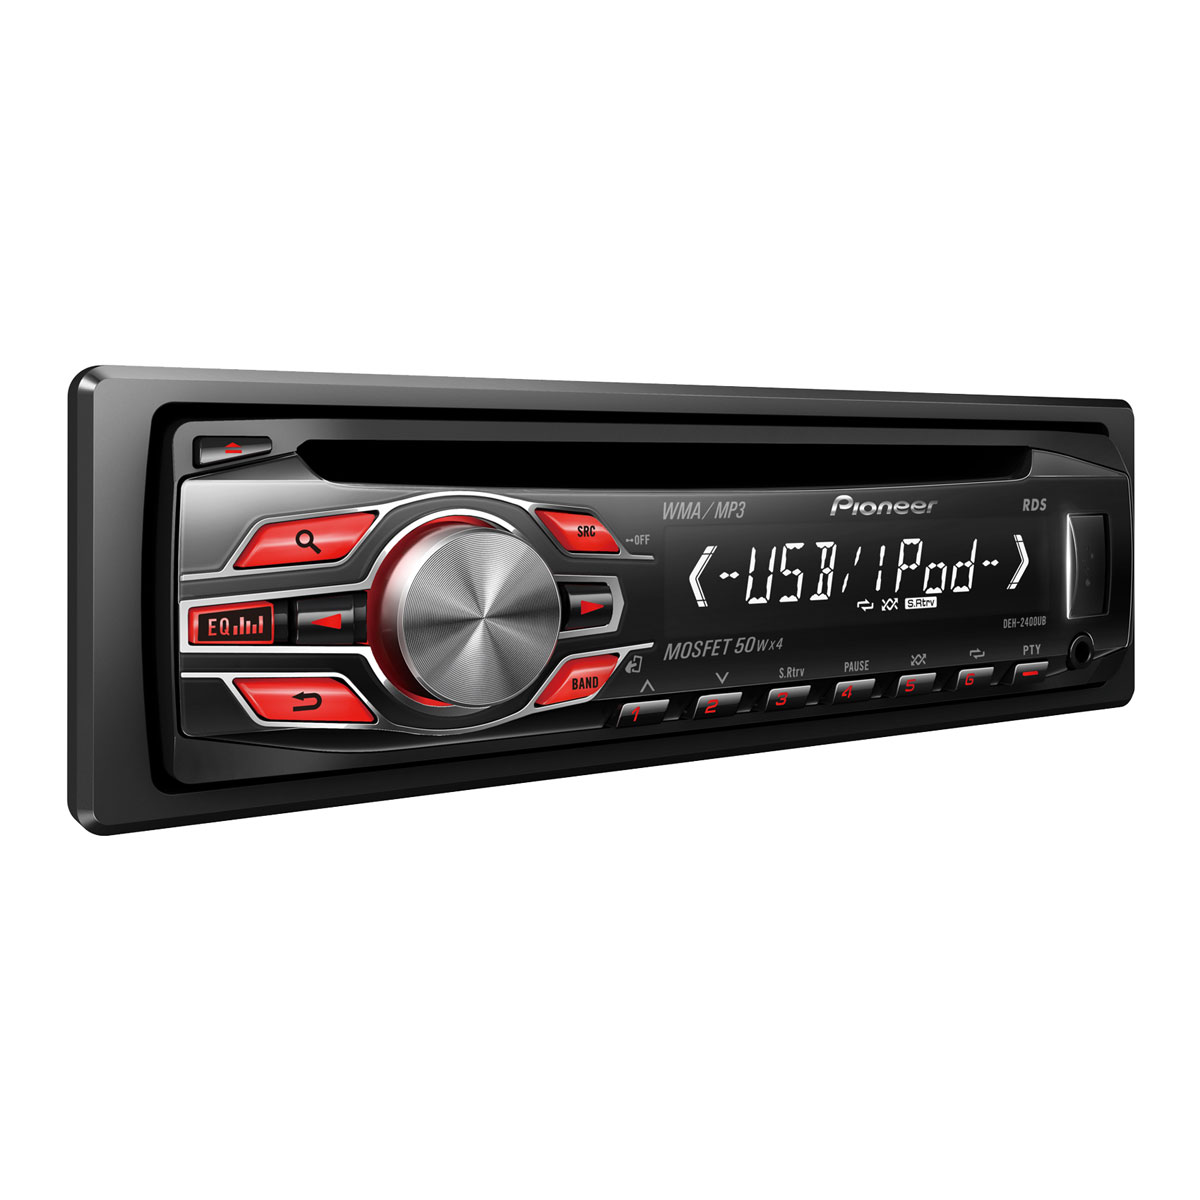 pioneer deh 2400ub autoradio pioneer sur ldlc. Black Bedroom Furniture Sets. Home Design Ideas